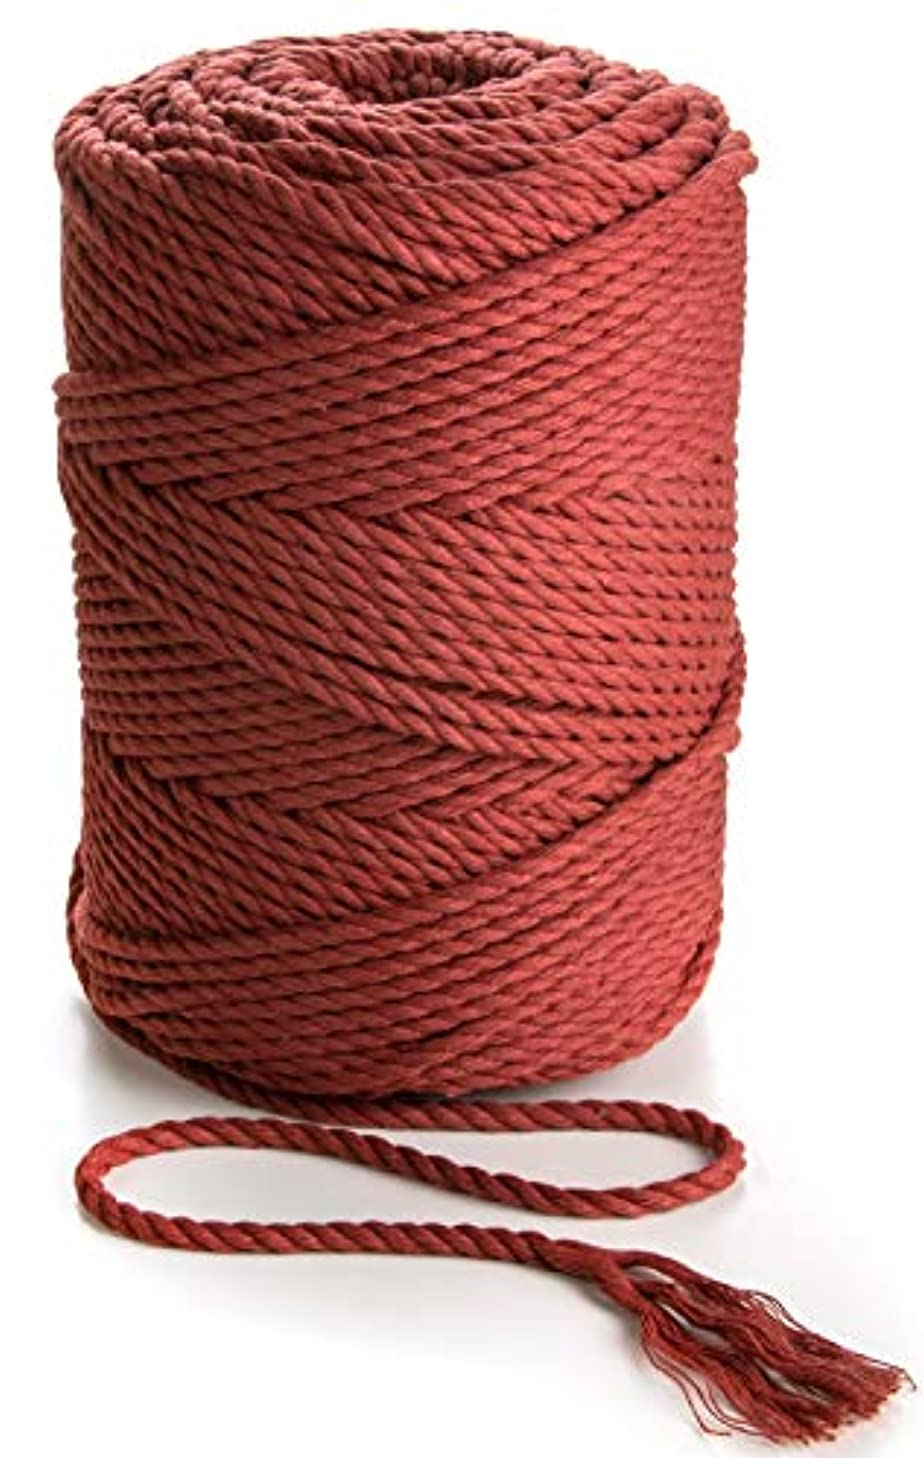 Macrame Cord 4mm Cotton Rope Cinnamon Red (Bordo) 492 feet Soft Cotton Macrame Cord Crafts Cord (Cinnamon Red (Bordo))